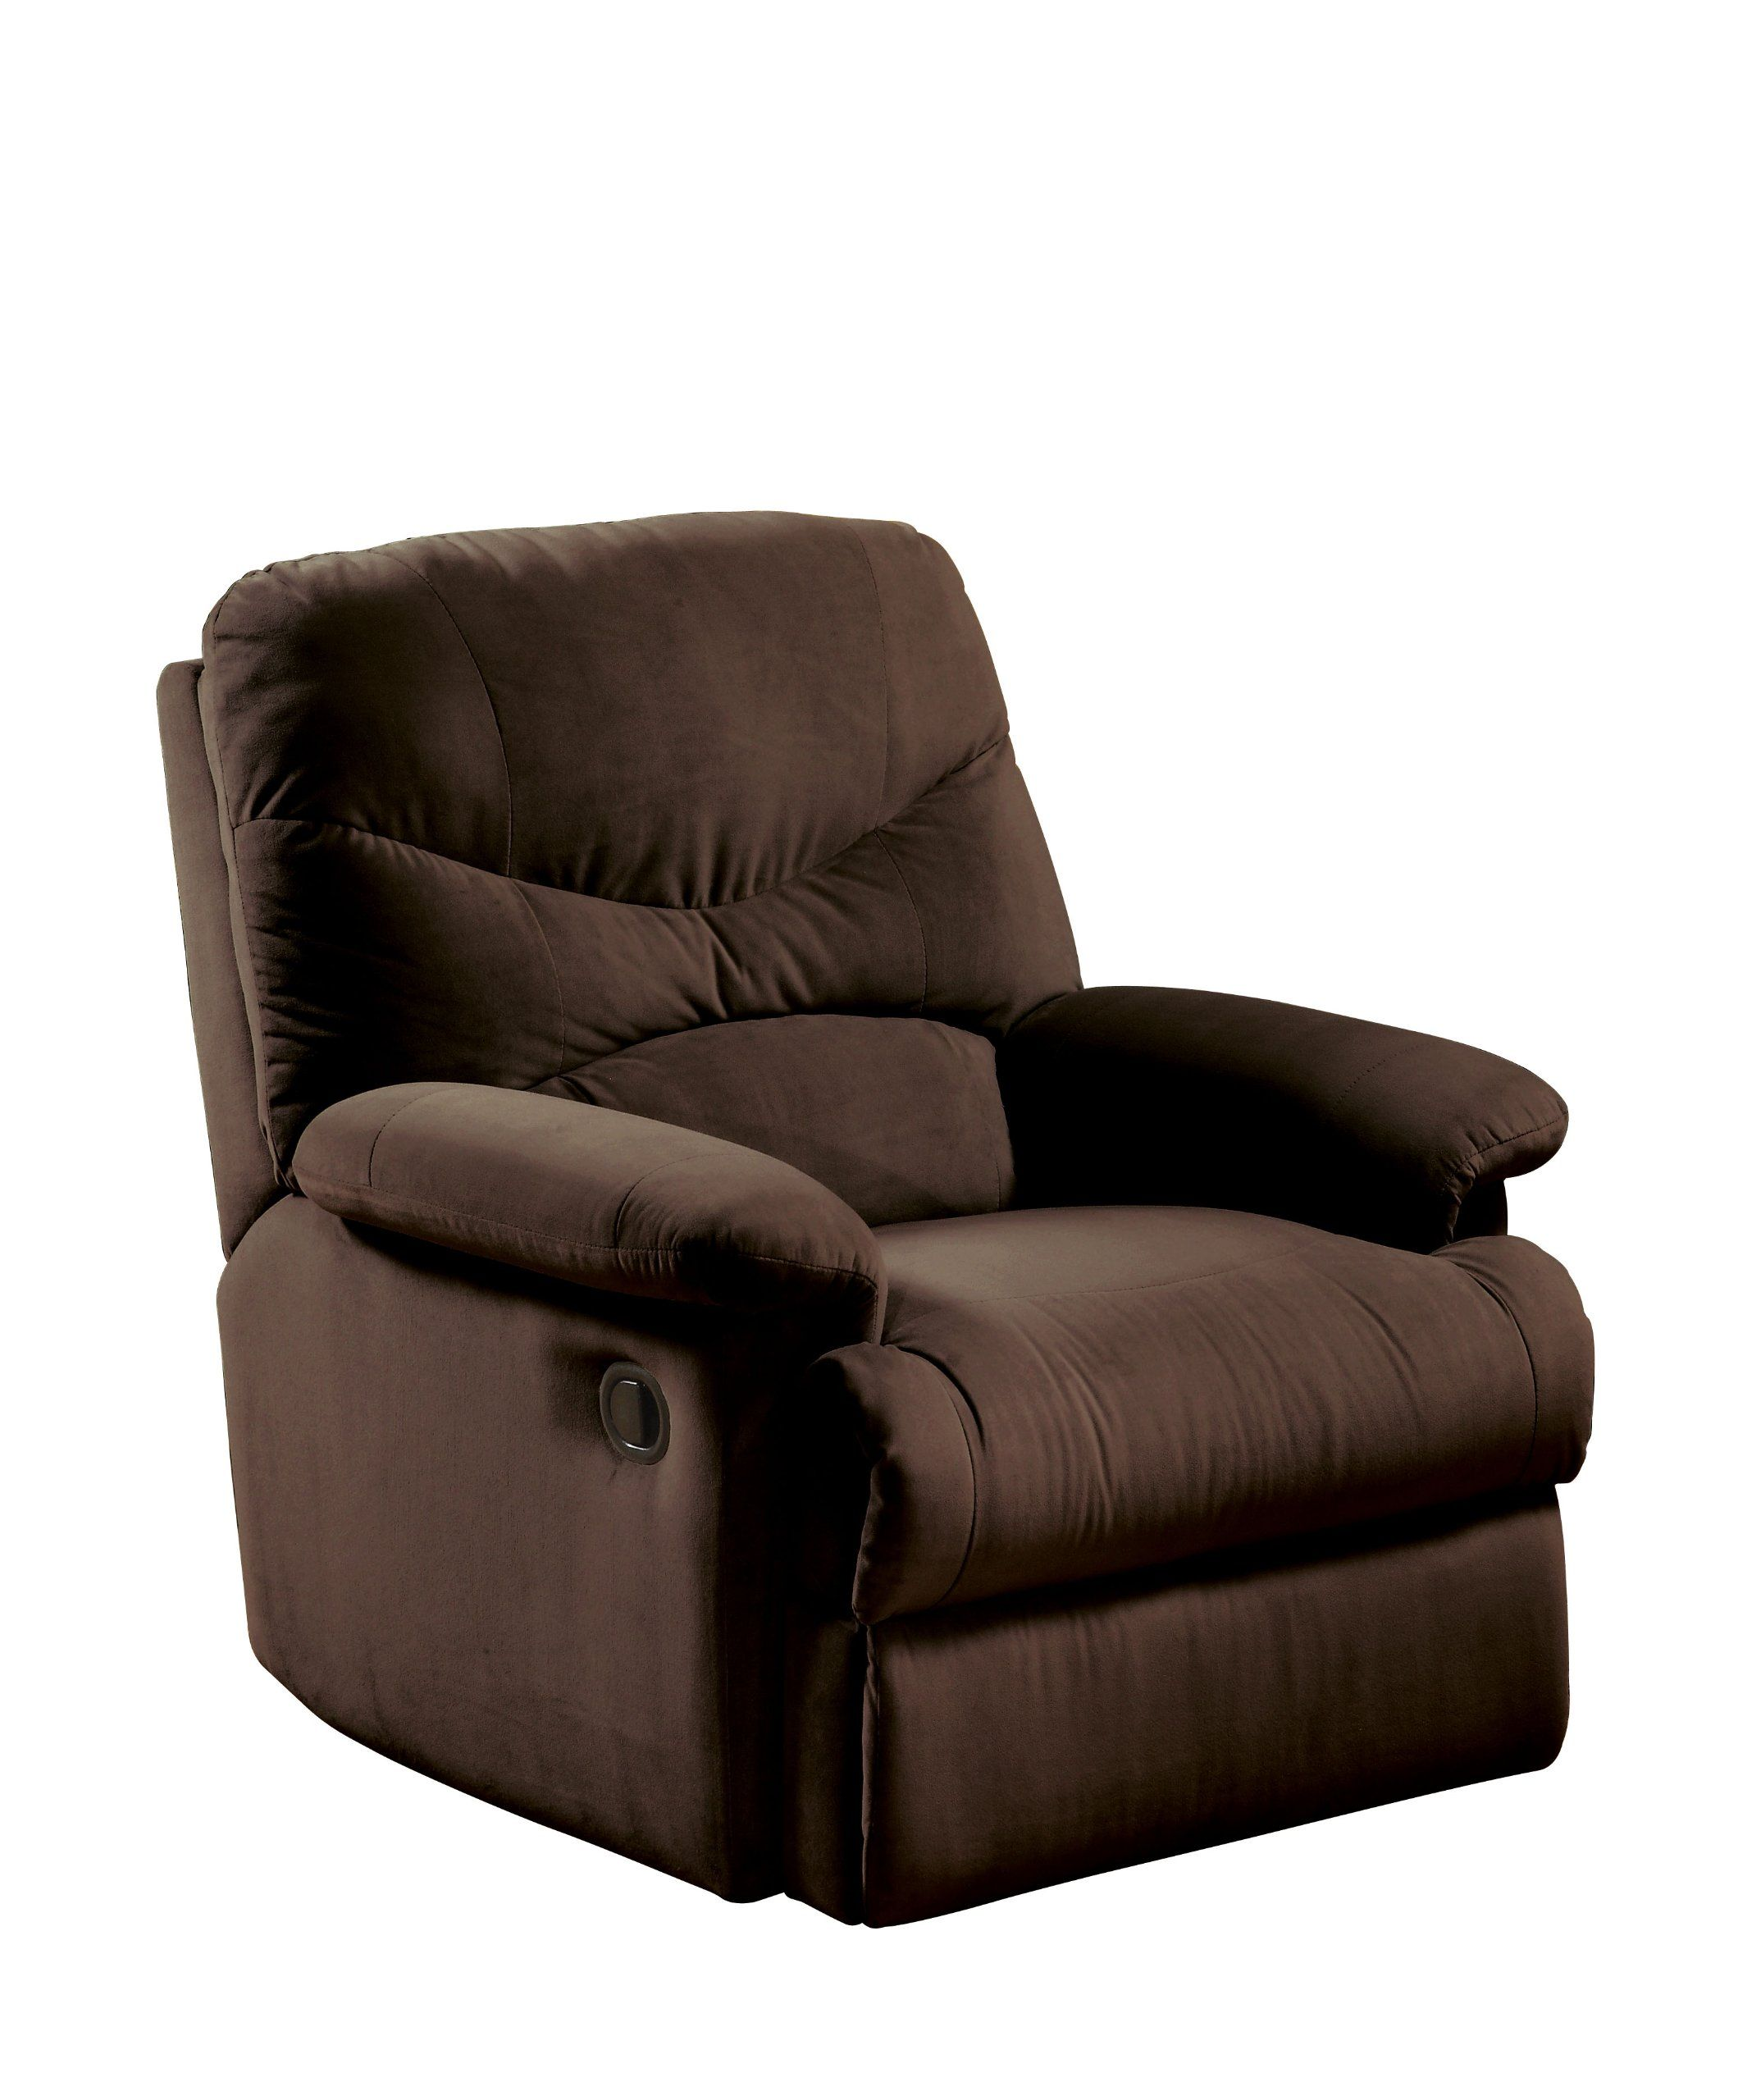 fbebbf110771c127b9fc7eda94b0c117 - Better Homes & Gardens Deluxe Rocking Recliner Brown